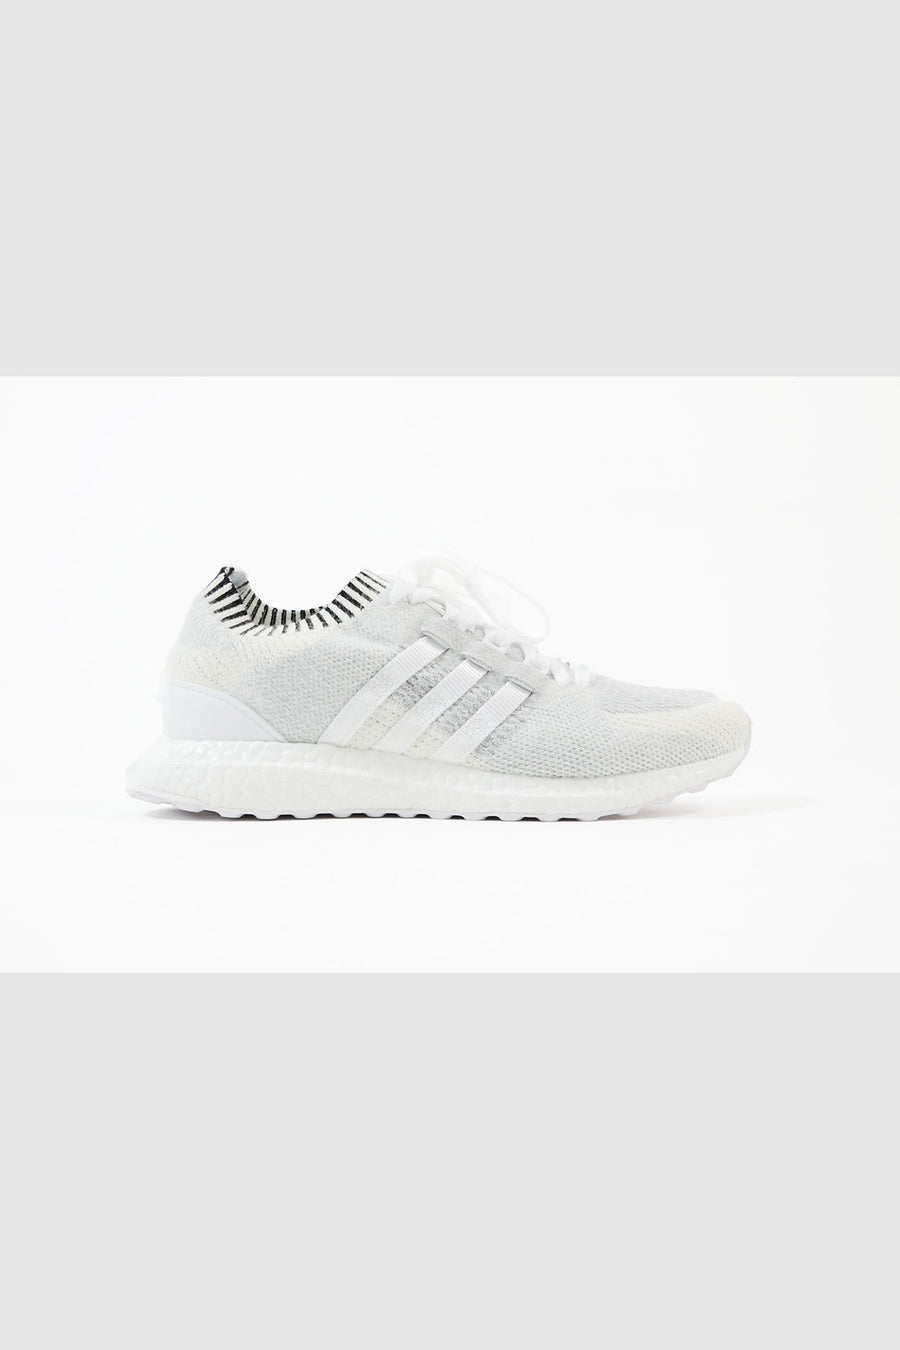 Adidas - Weißer EQT Support Ultra Sneaker in prime knit